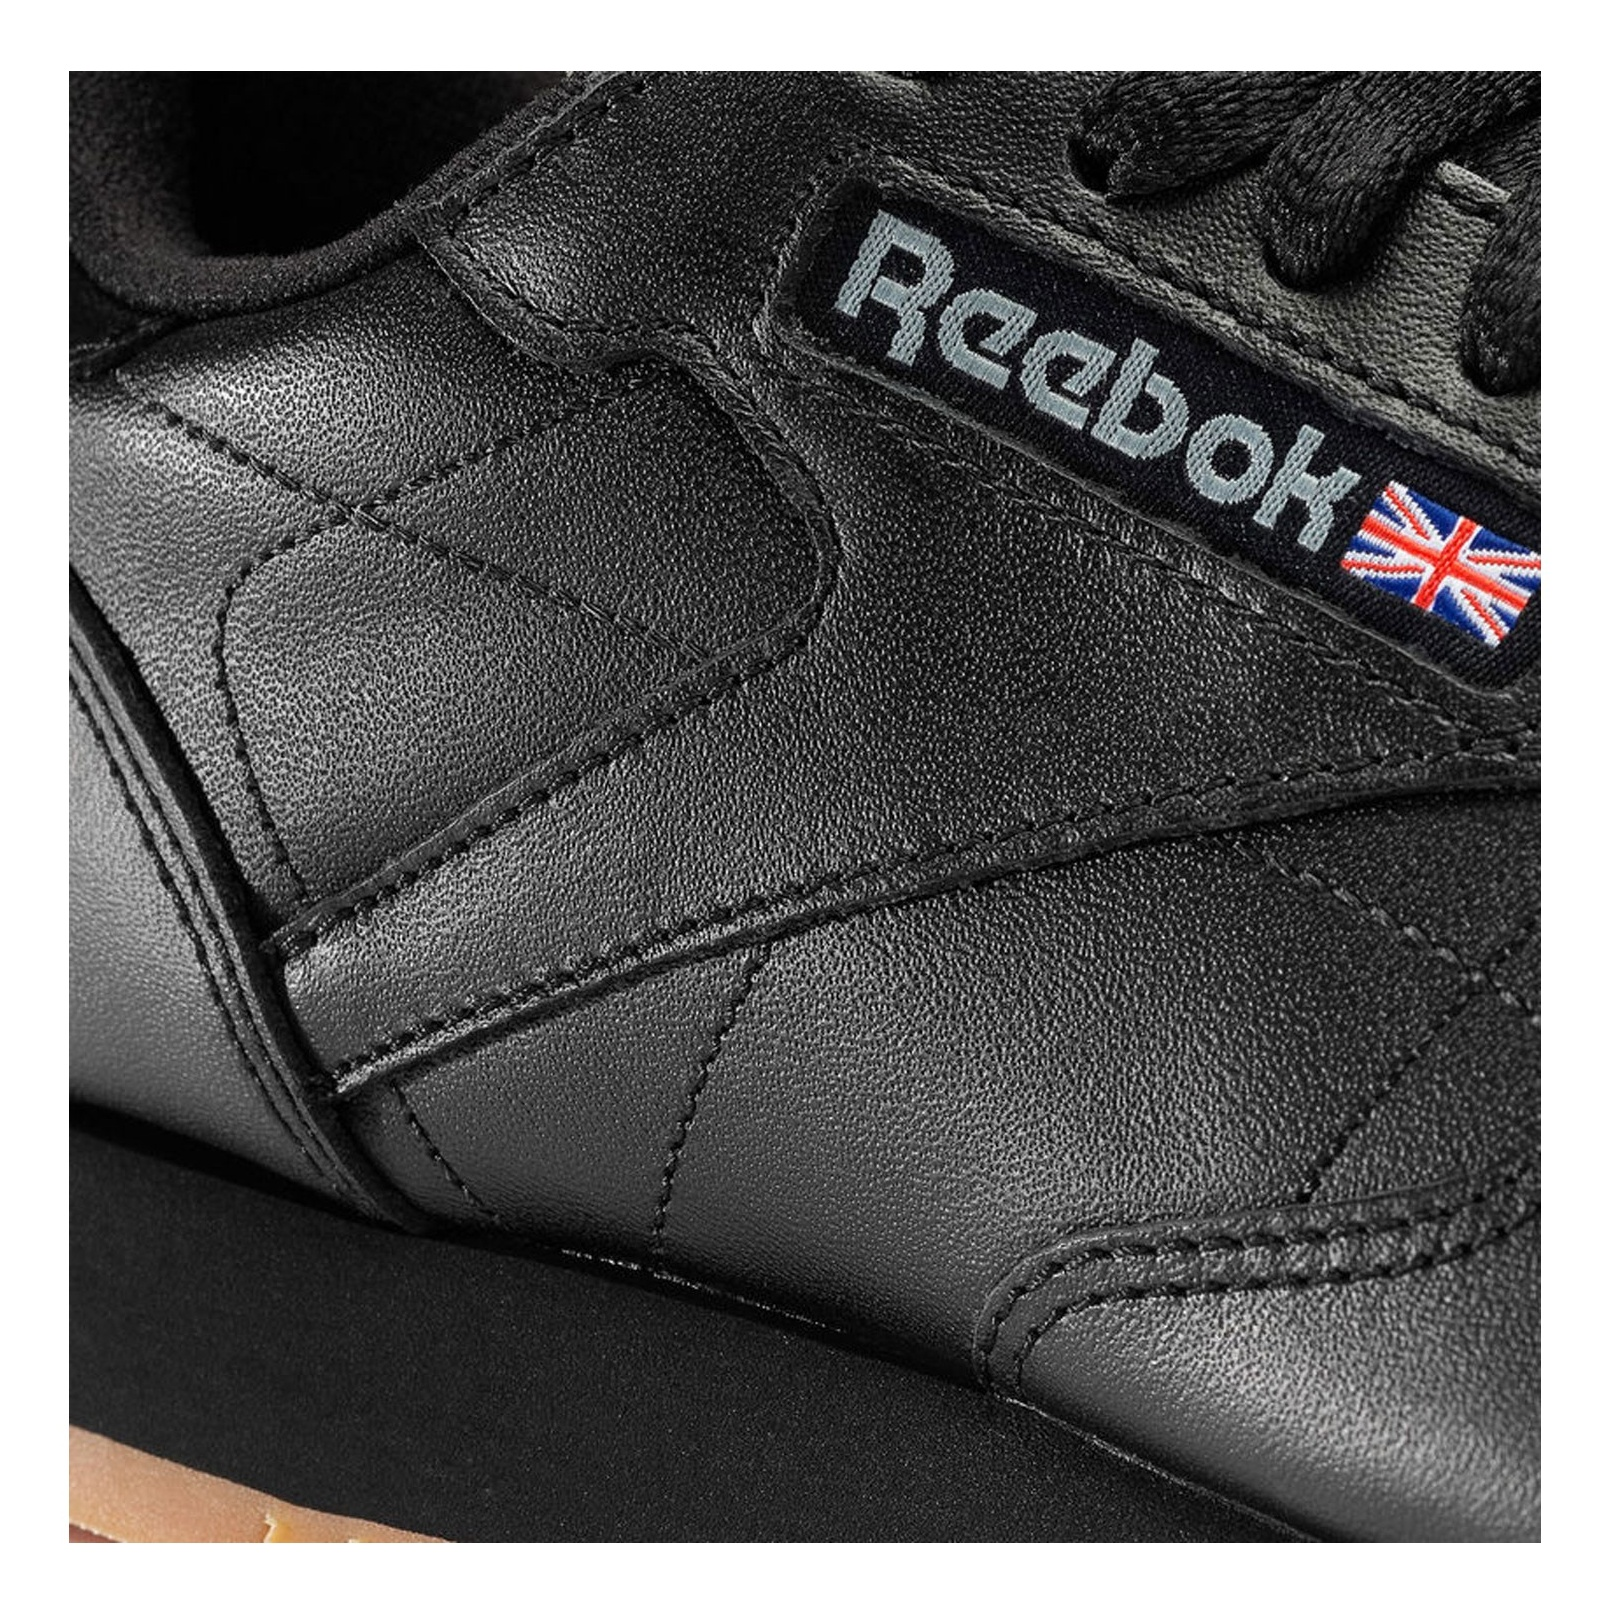 Reebok men's leather sneakers